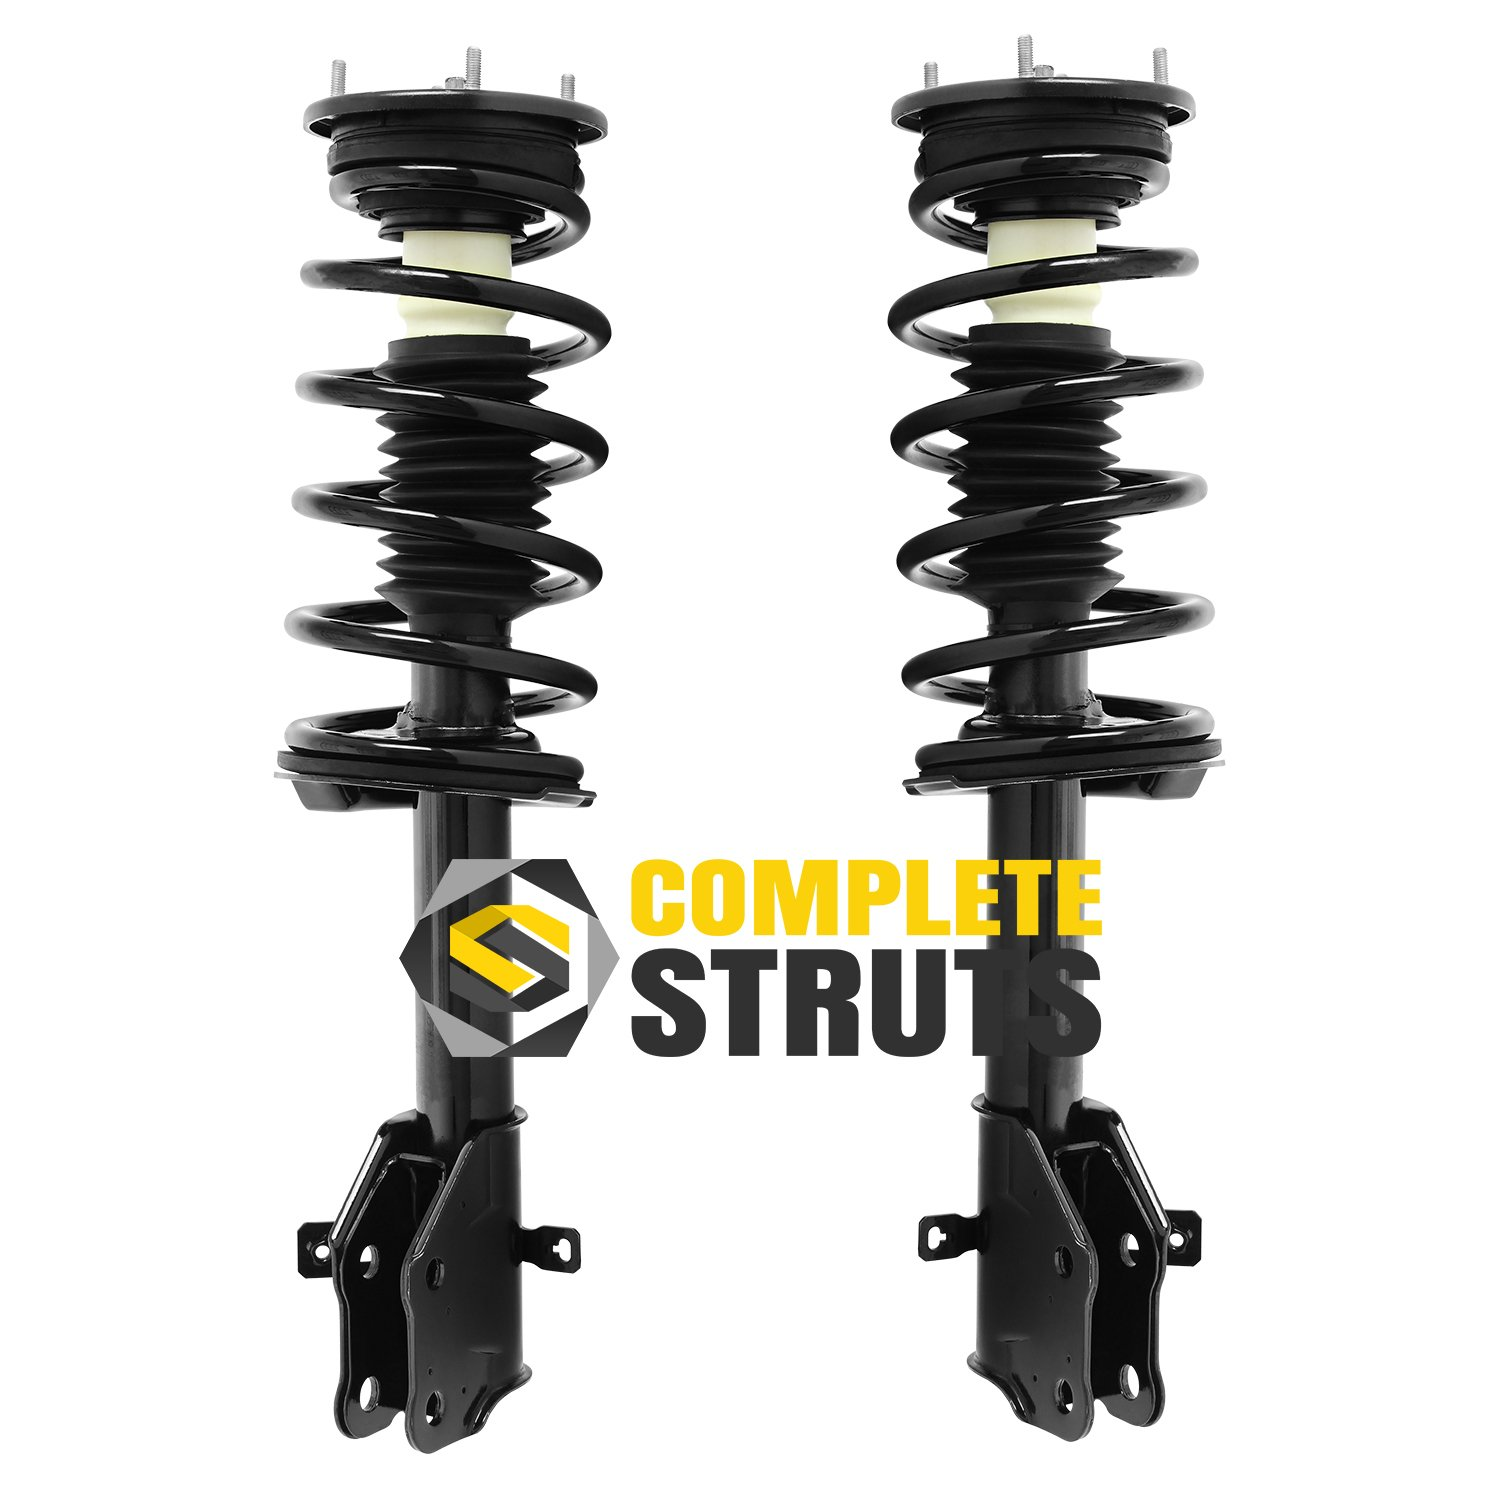 Pair Front Quick Complete Struts /& Coil Spring Assemblies Compatible with 2007-2010 Ford Edge